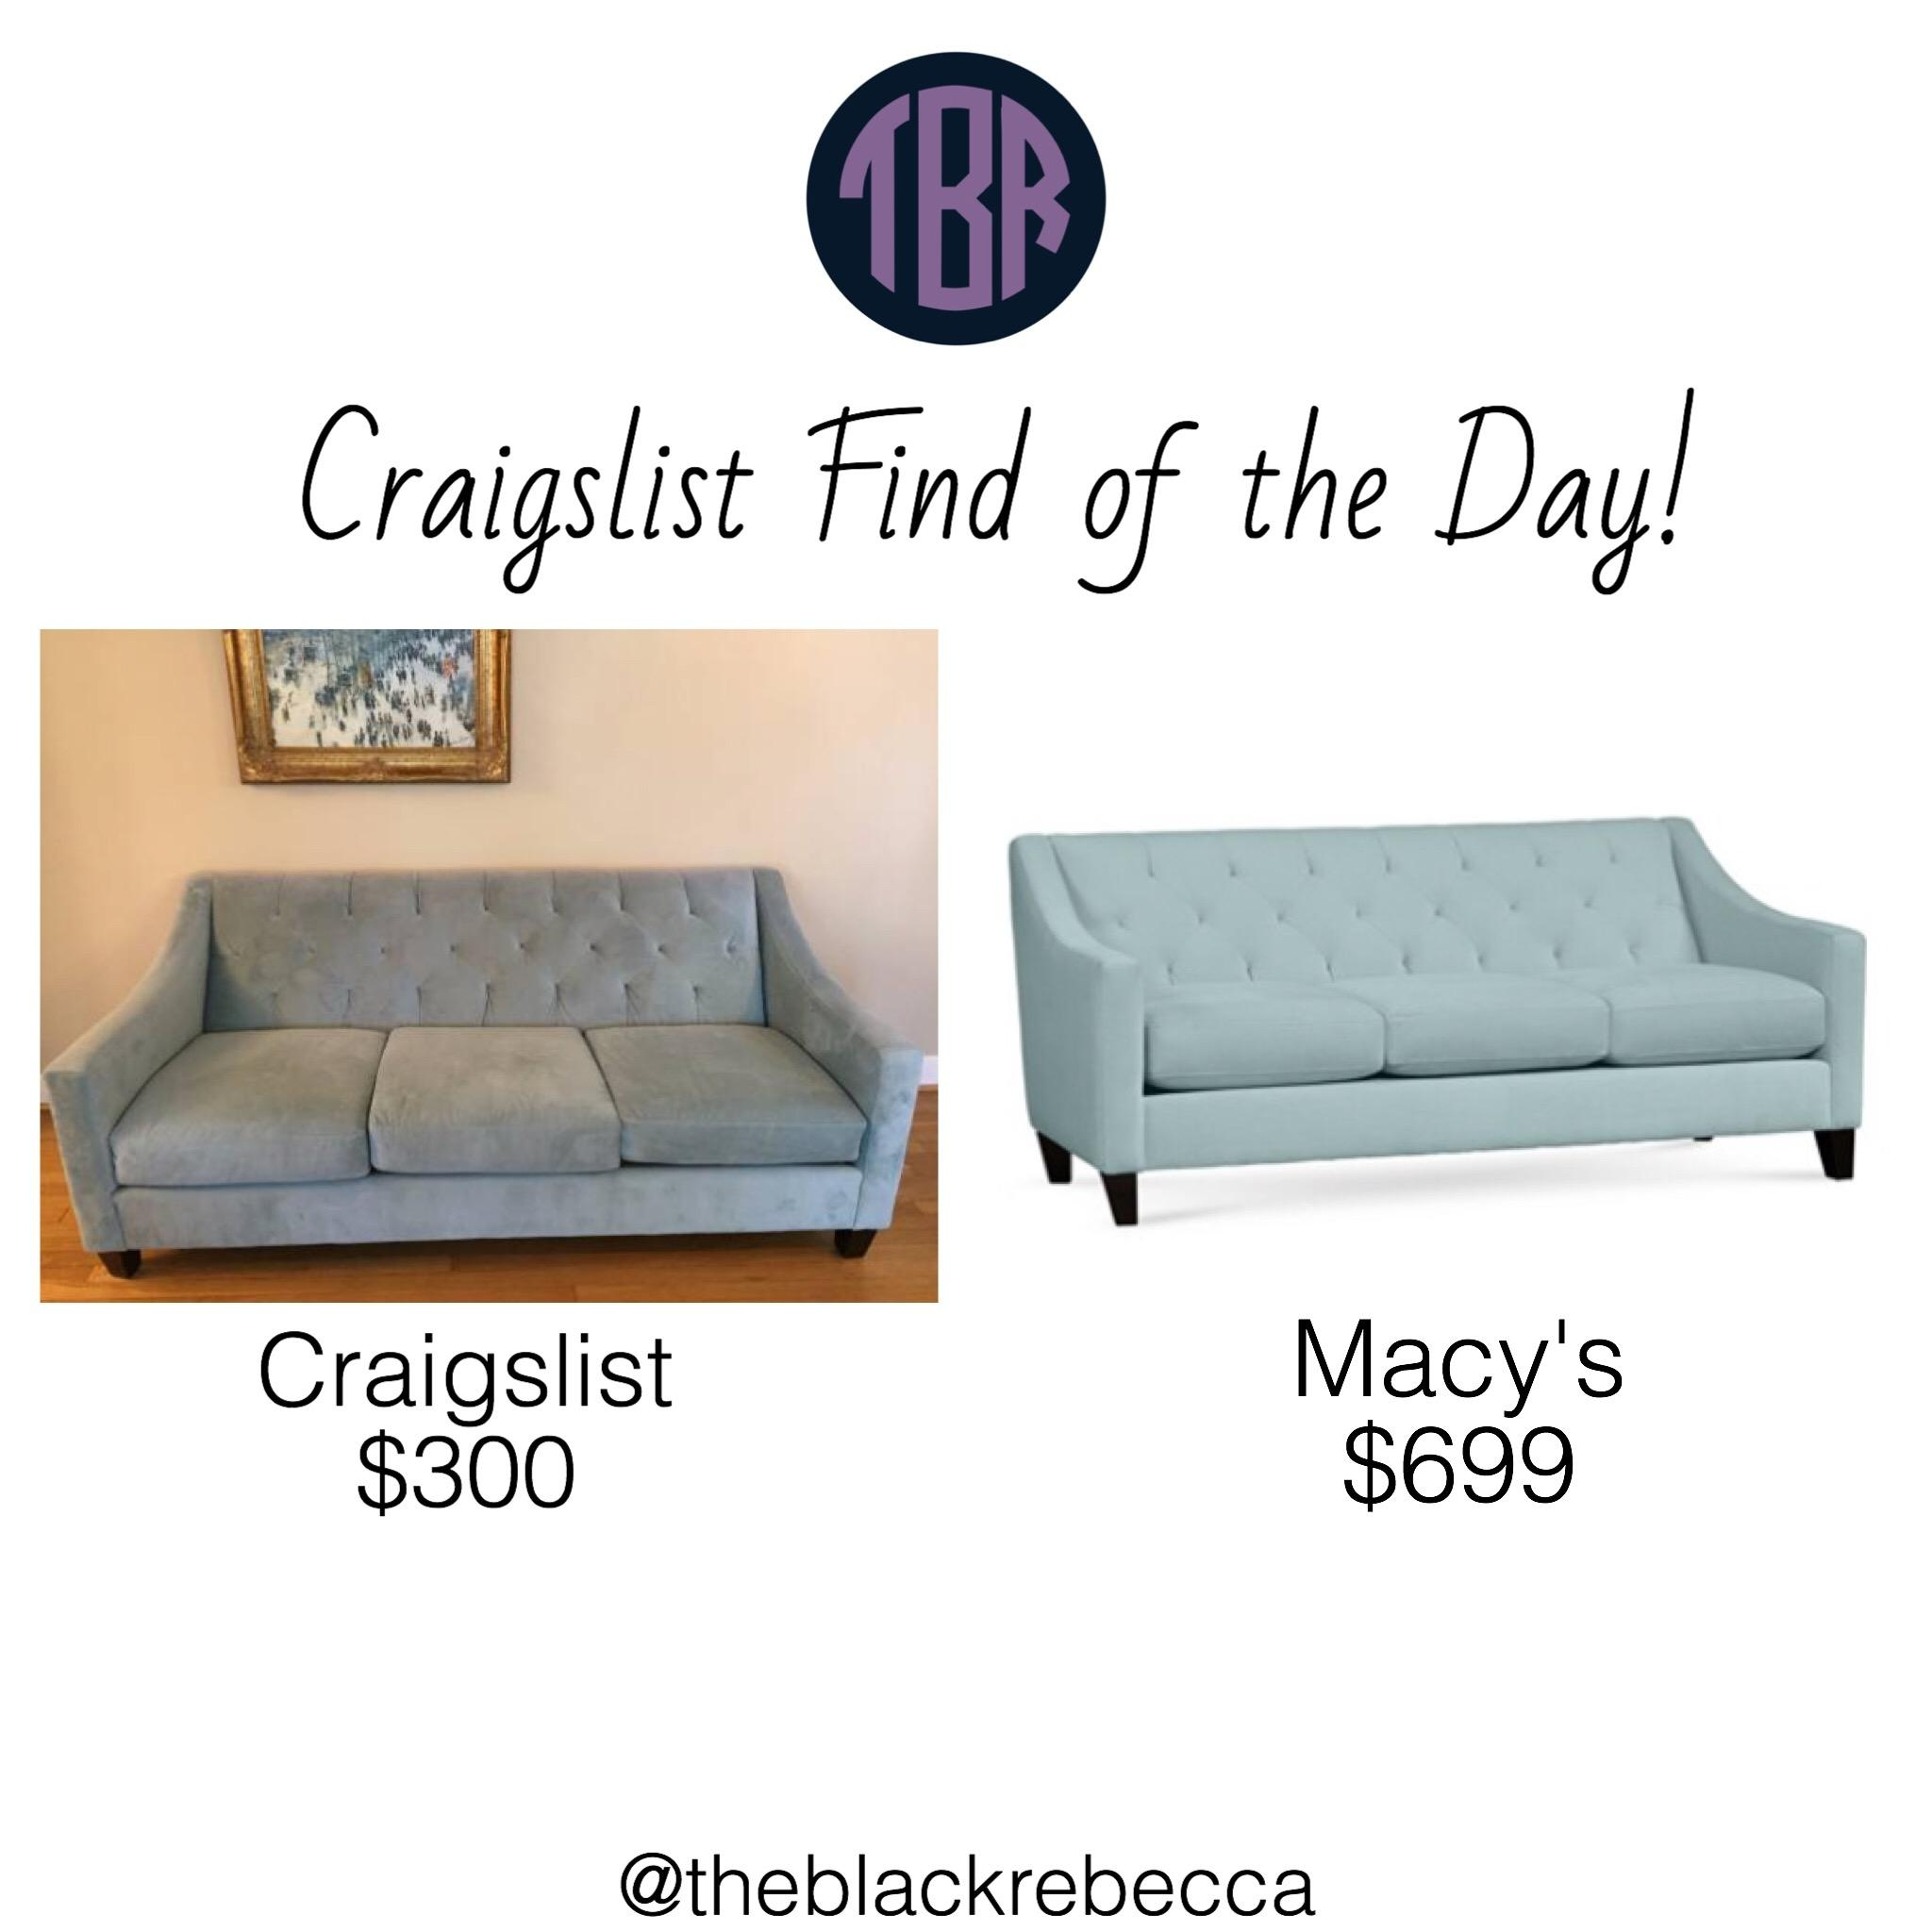 Craigslist Find Of The Day: Macy's Chloe Velvet Tufted Sofa – The Pertaining To Seafoam Sofas (View 15 of 20)